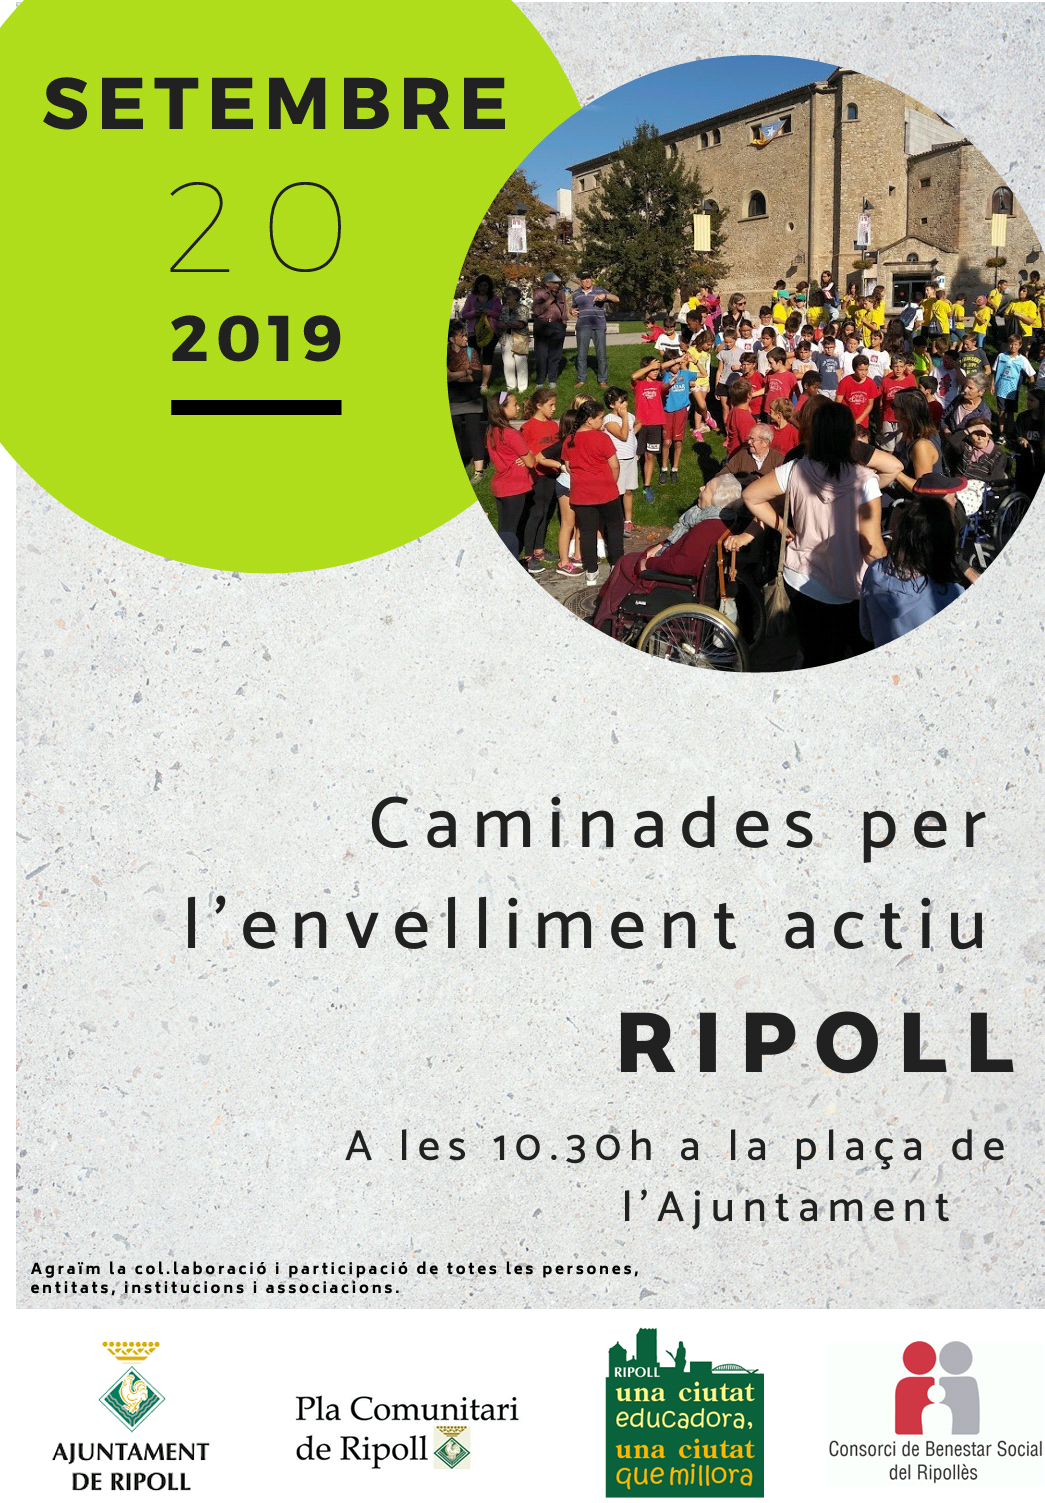 EVELL RIPOLL